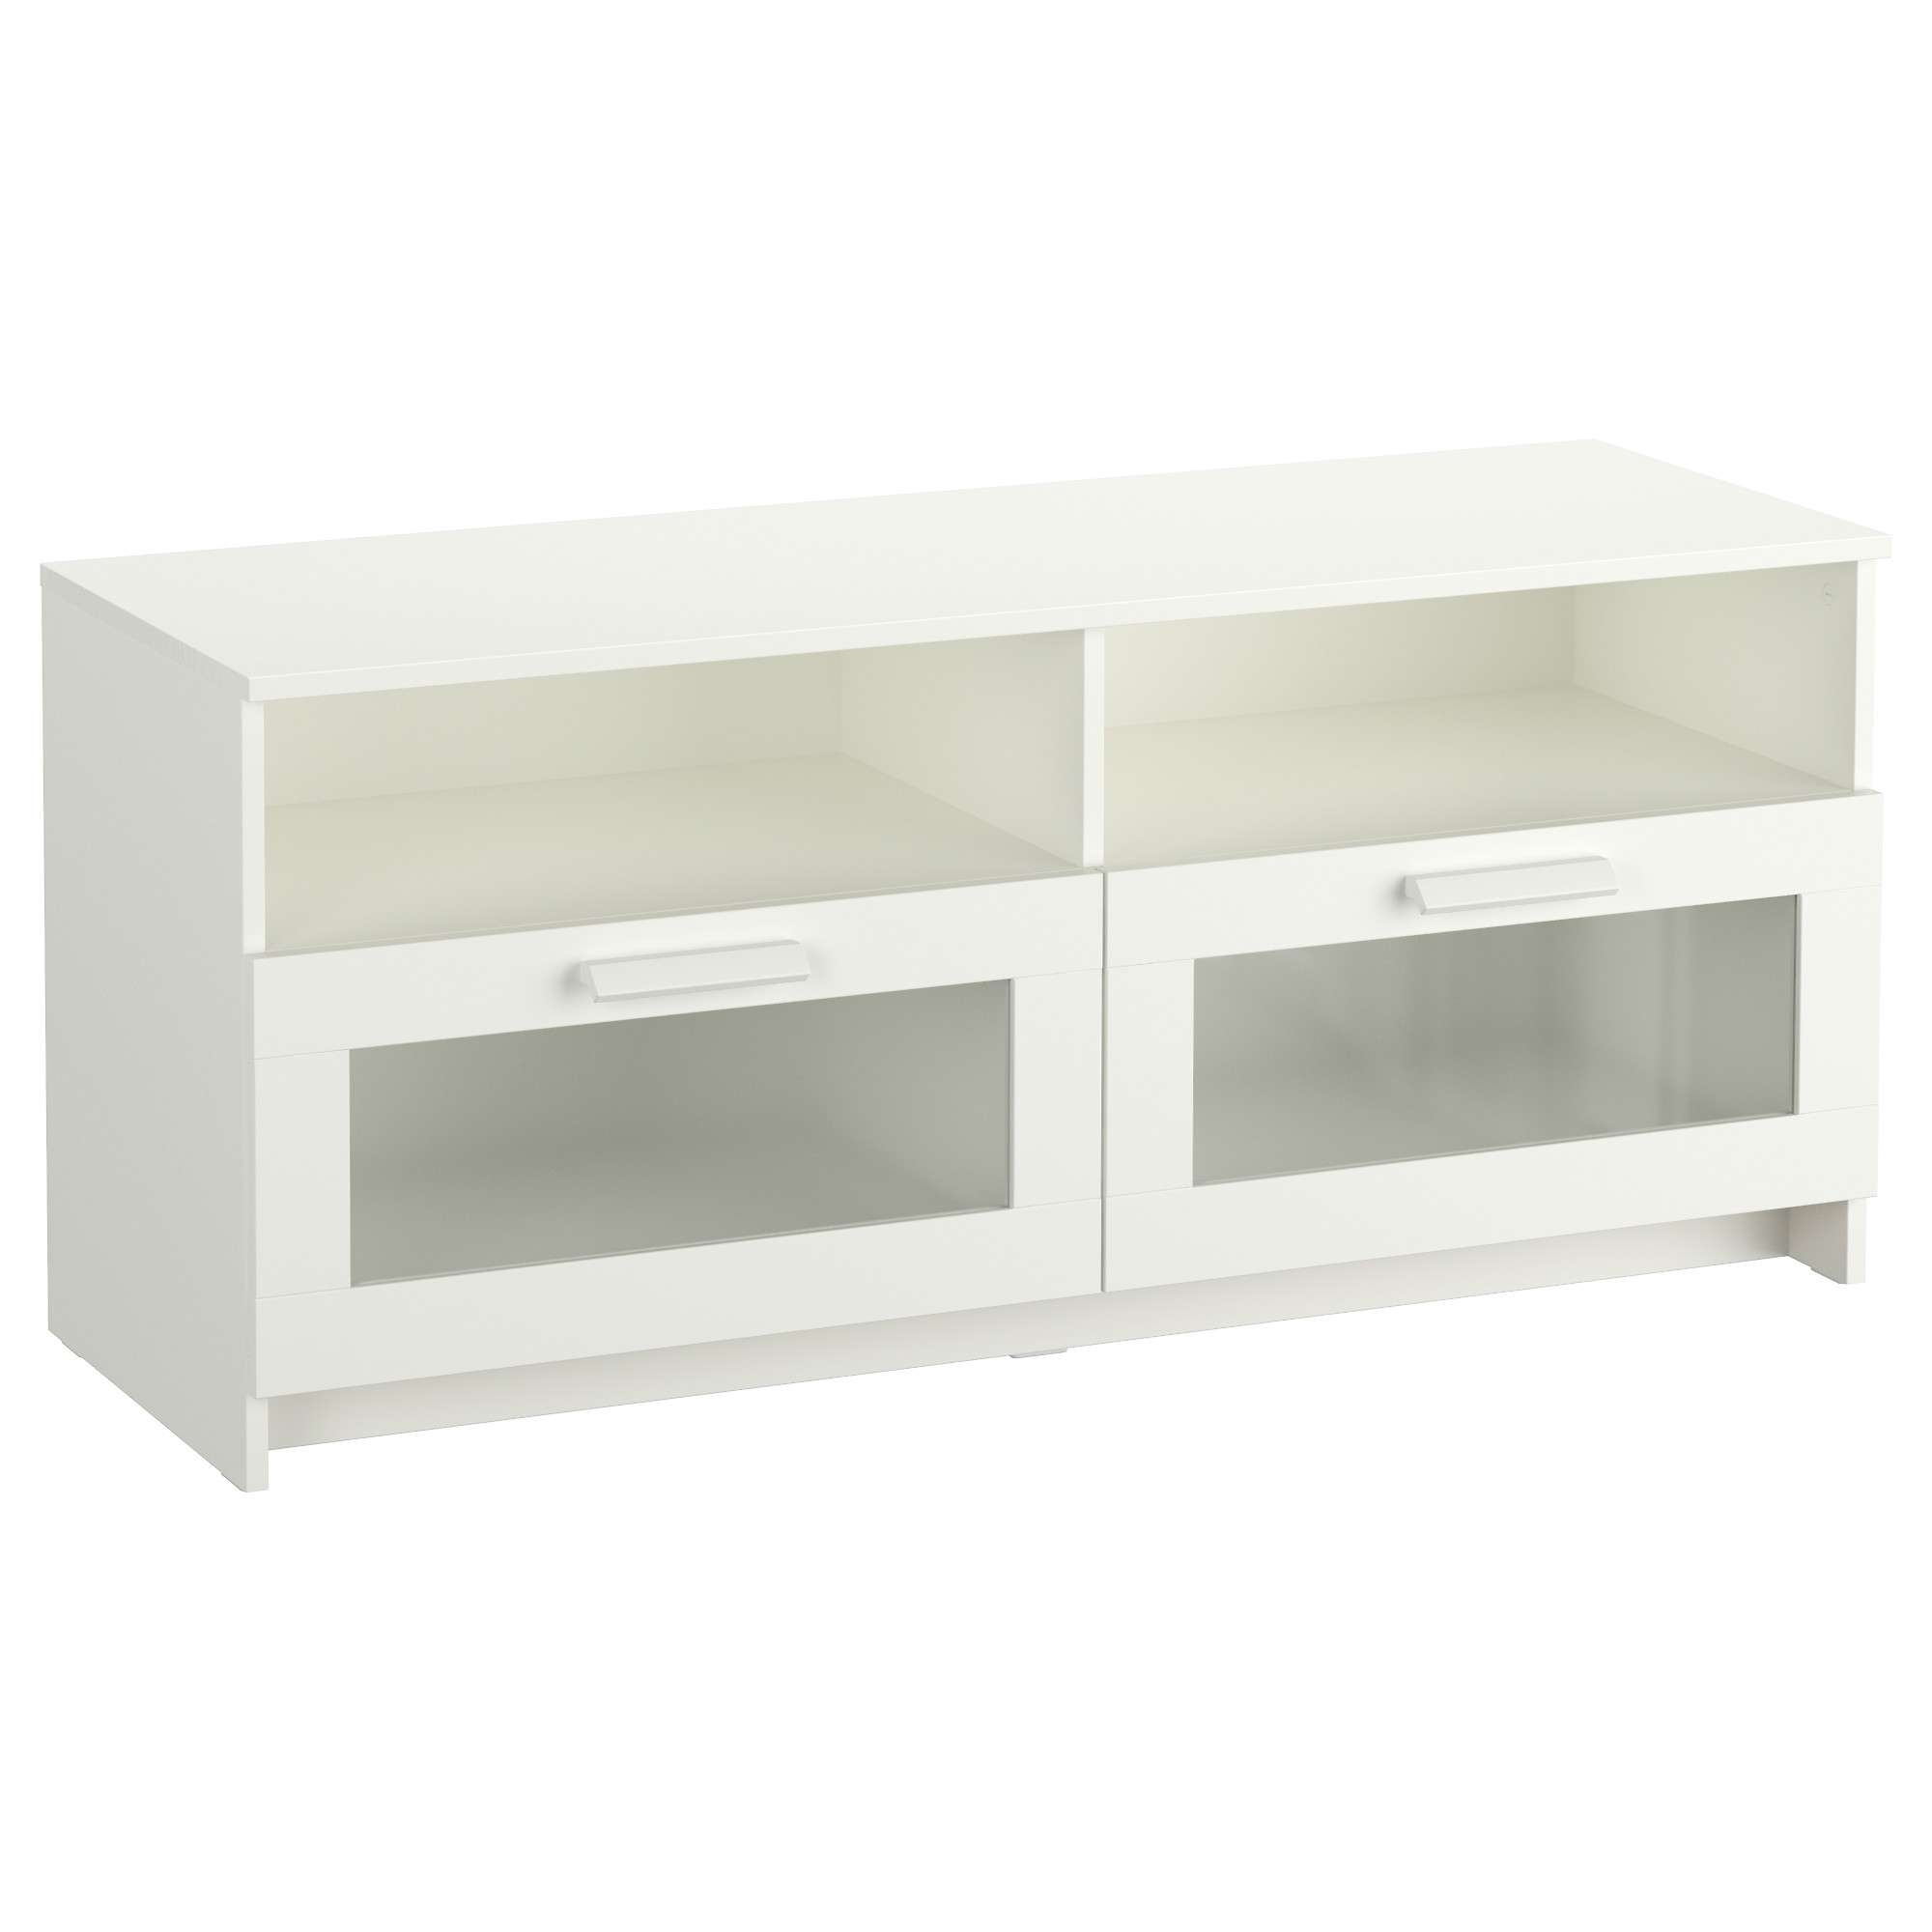 Brimnes Tv Unit – White – Ikea With Regard To Tv Stands White (View 7 of 20)